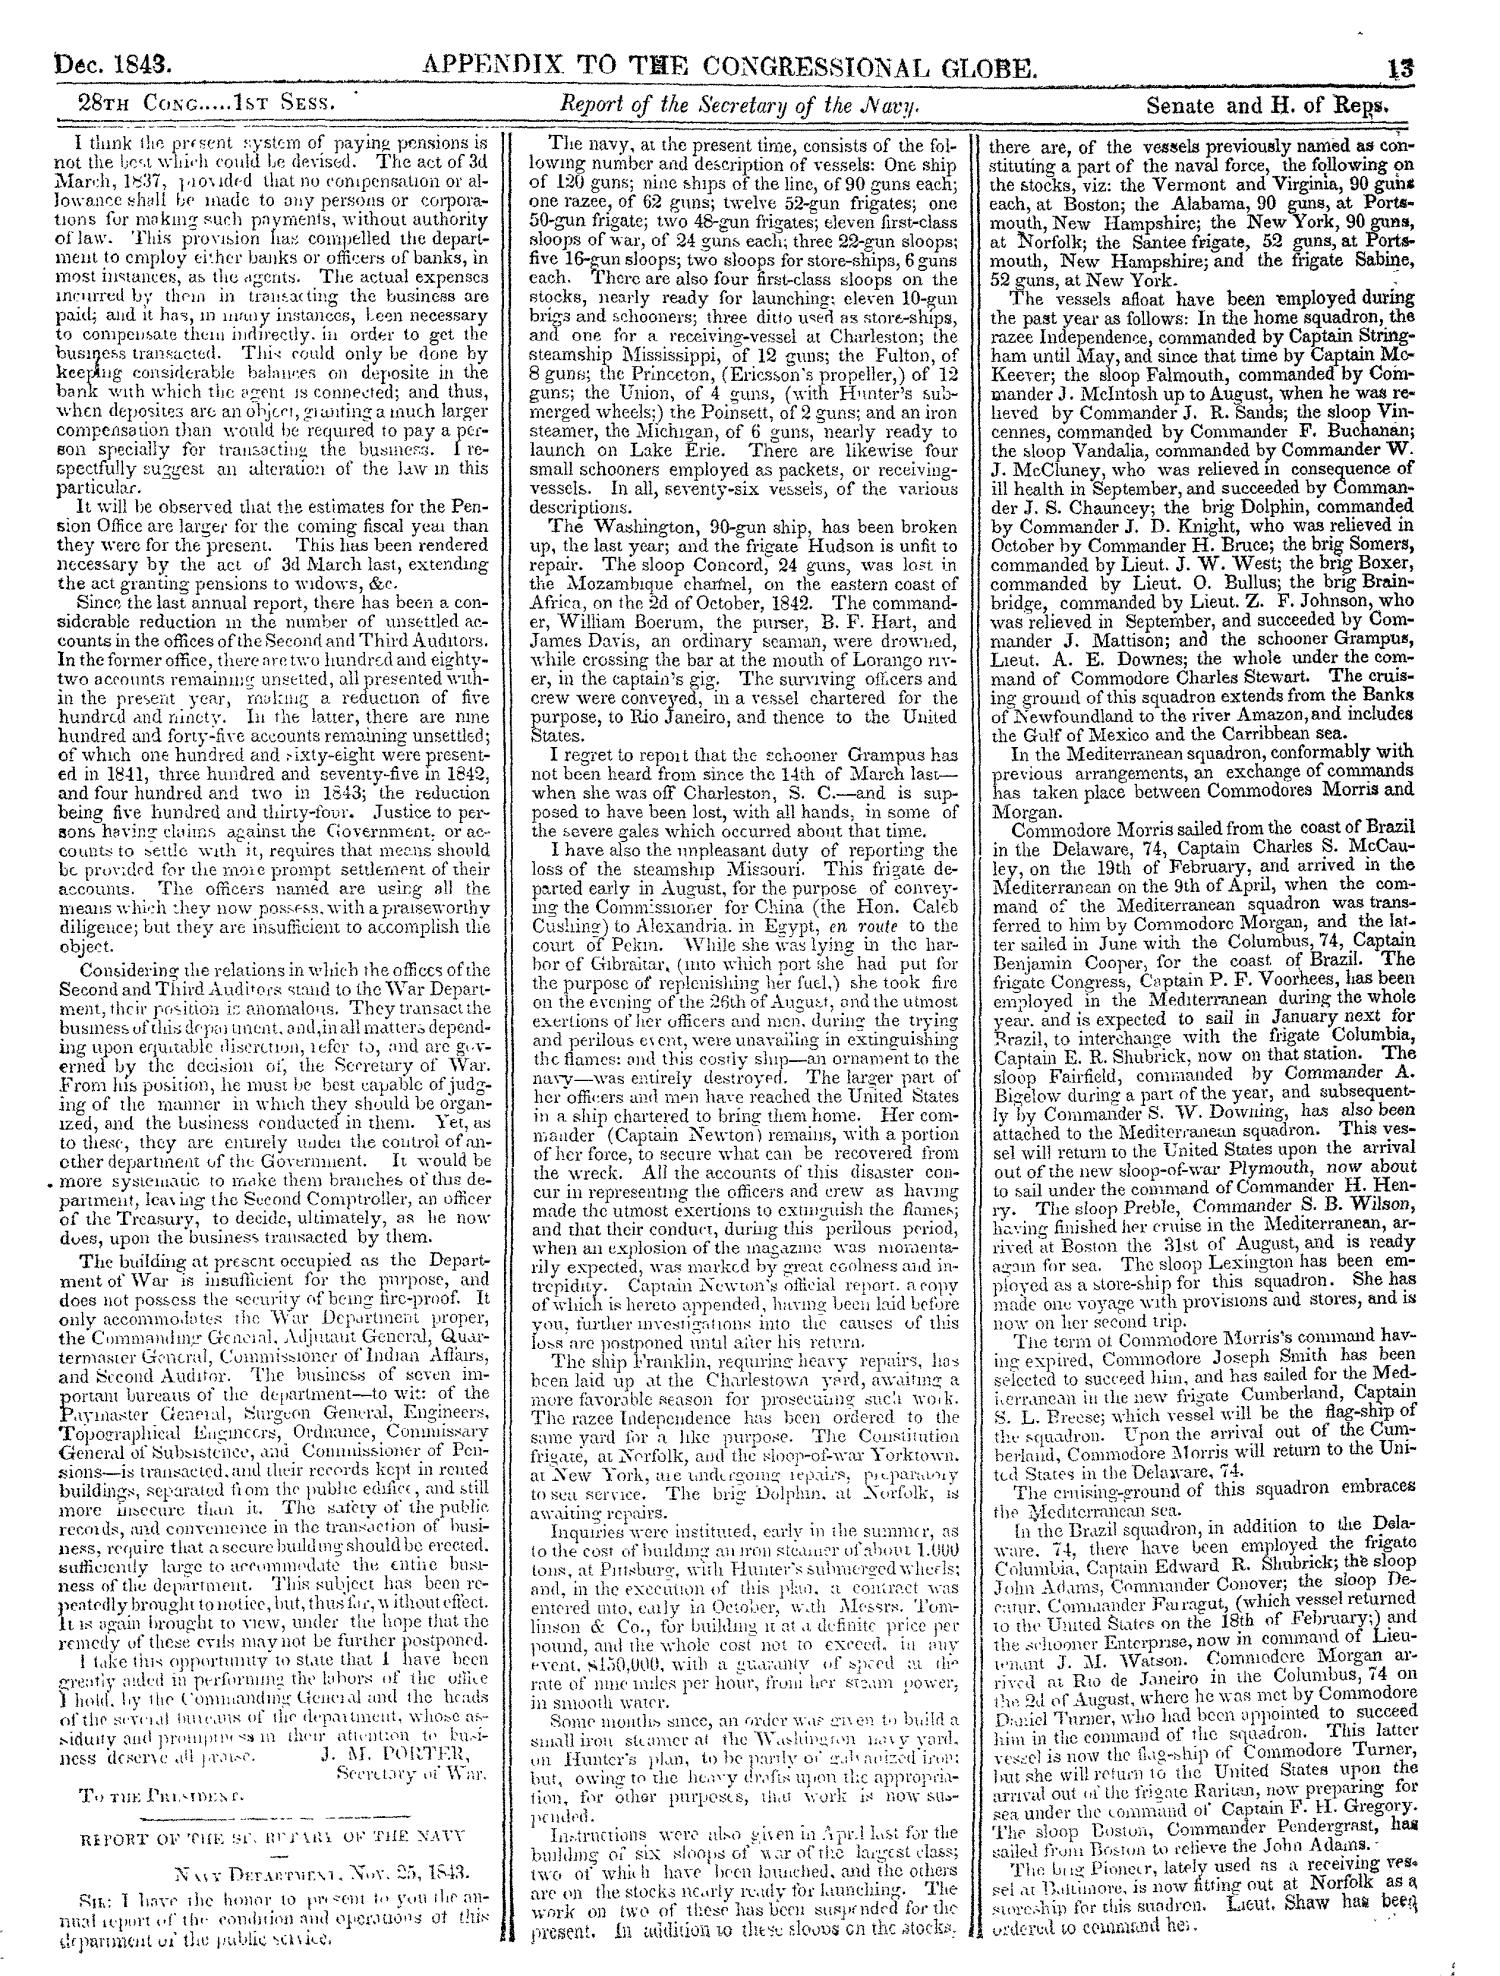 The Congressional Globe, Volume 13, Part 2: Twenty-Eighth Congress, First Session                                                                                                      13